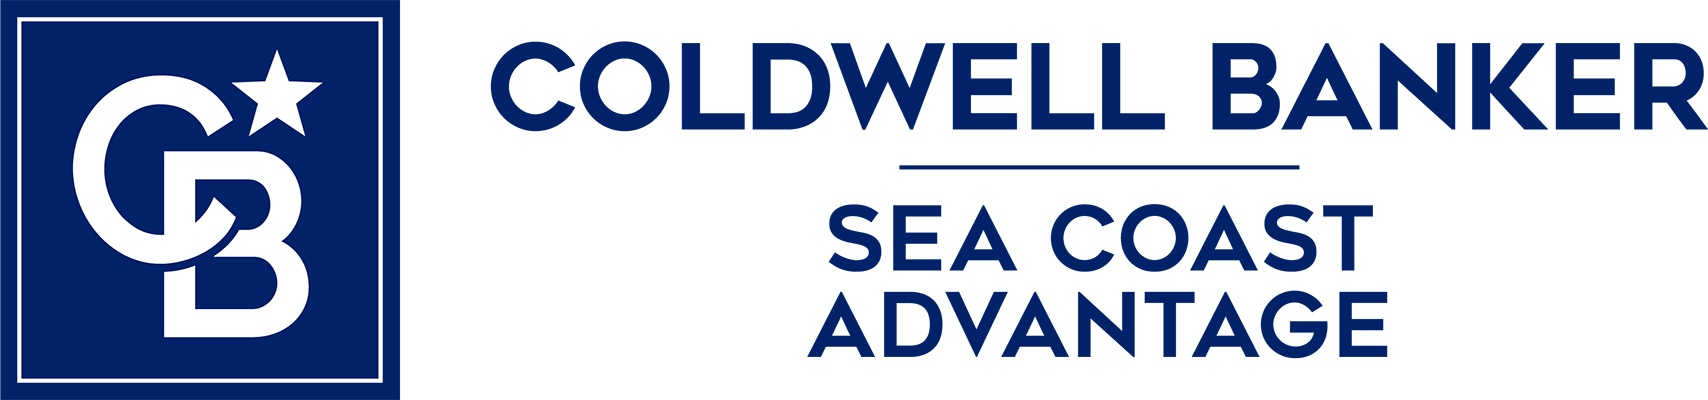 Josie Godwin - Coldwell Banker Sea Coast Advantage Realty